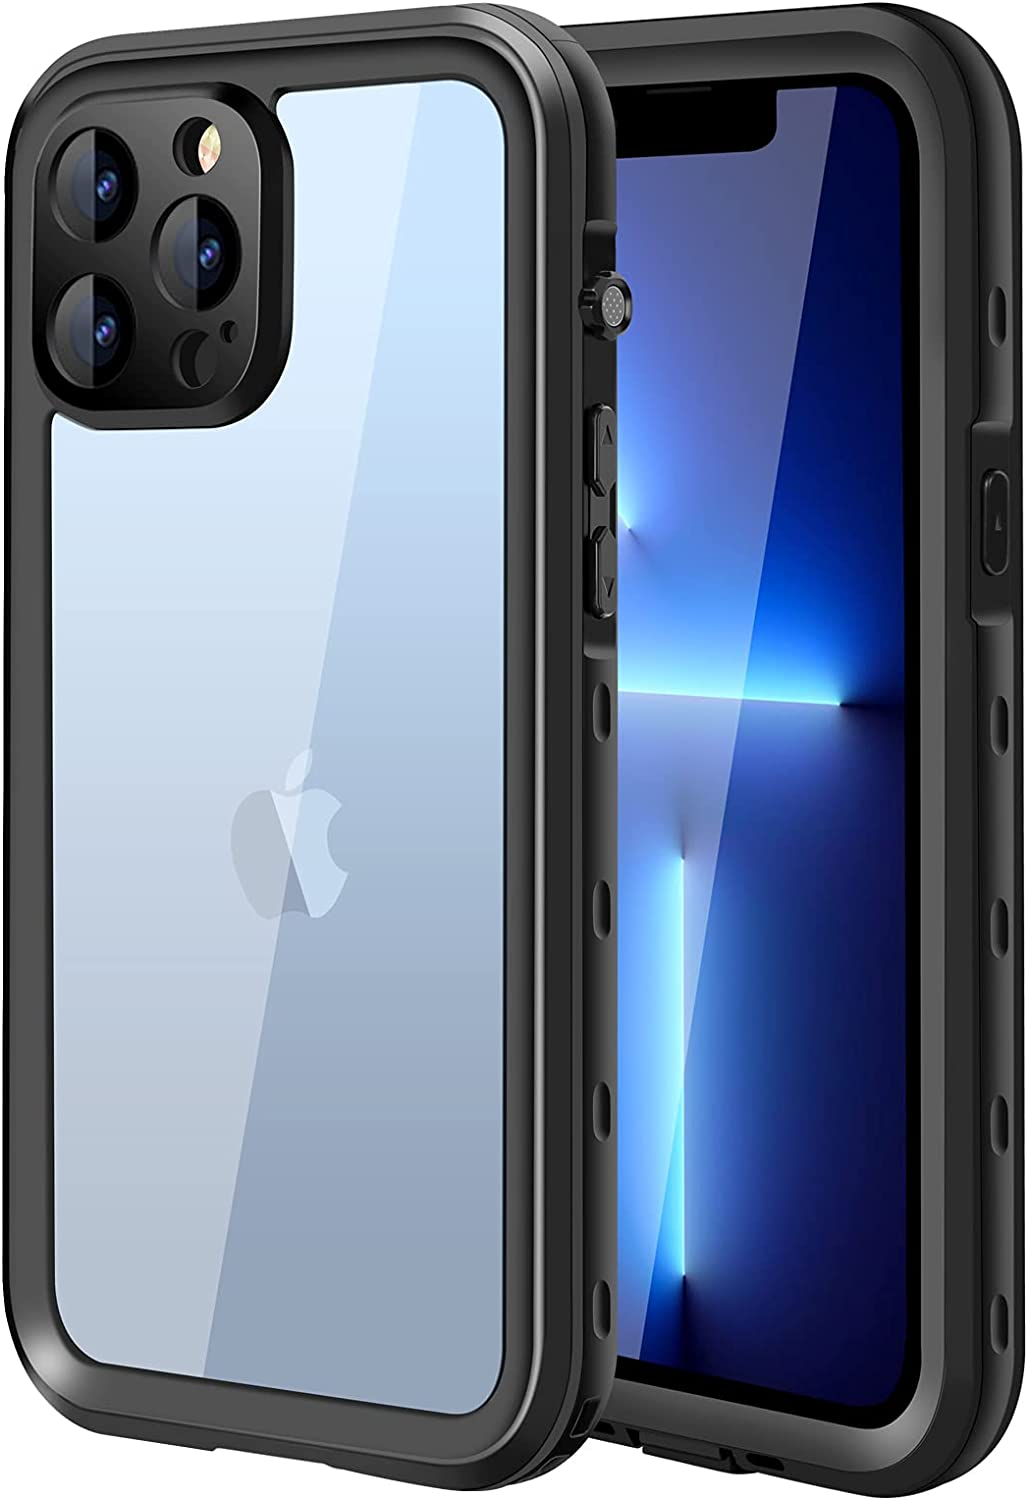 TAKED for iPhone 13 Pro Waterproof Case, IP68 Underwater Case Built-in Screen Protector 360°Full Body Sealed Heavy Duty Protective Cover Shockproof Snowproof for iPhone 13 Pro 6.1